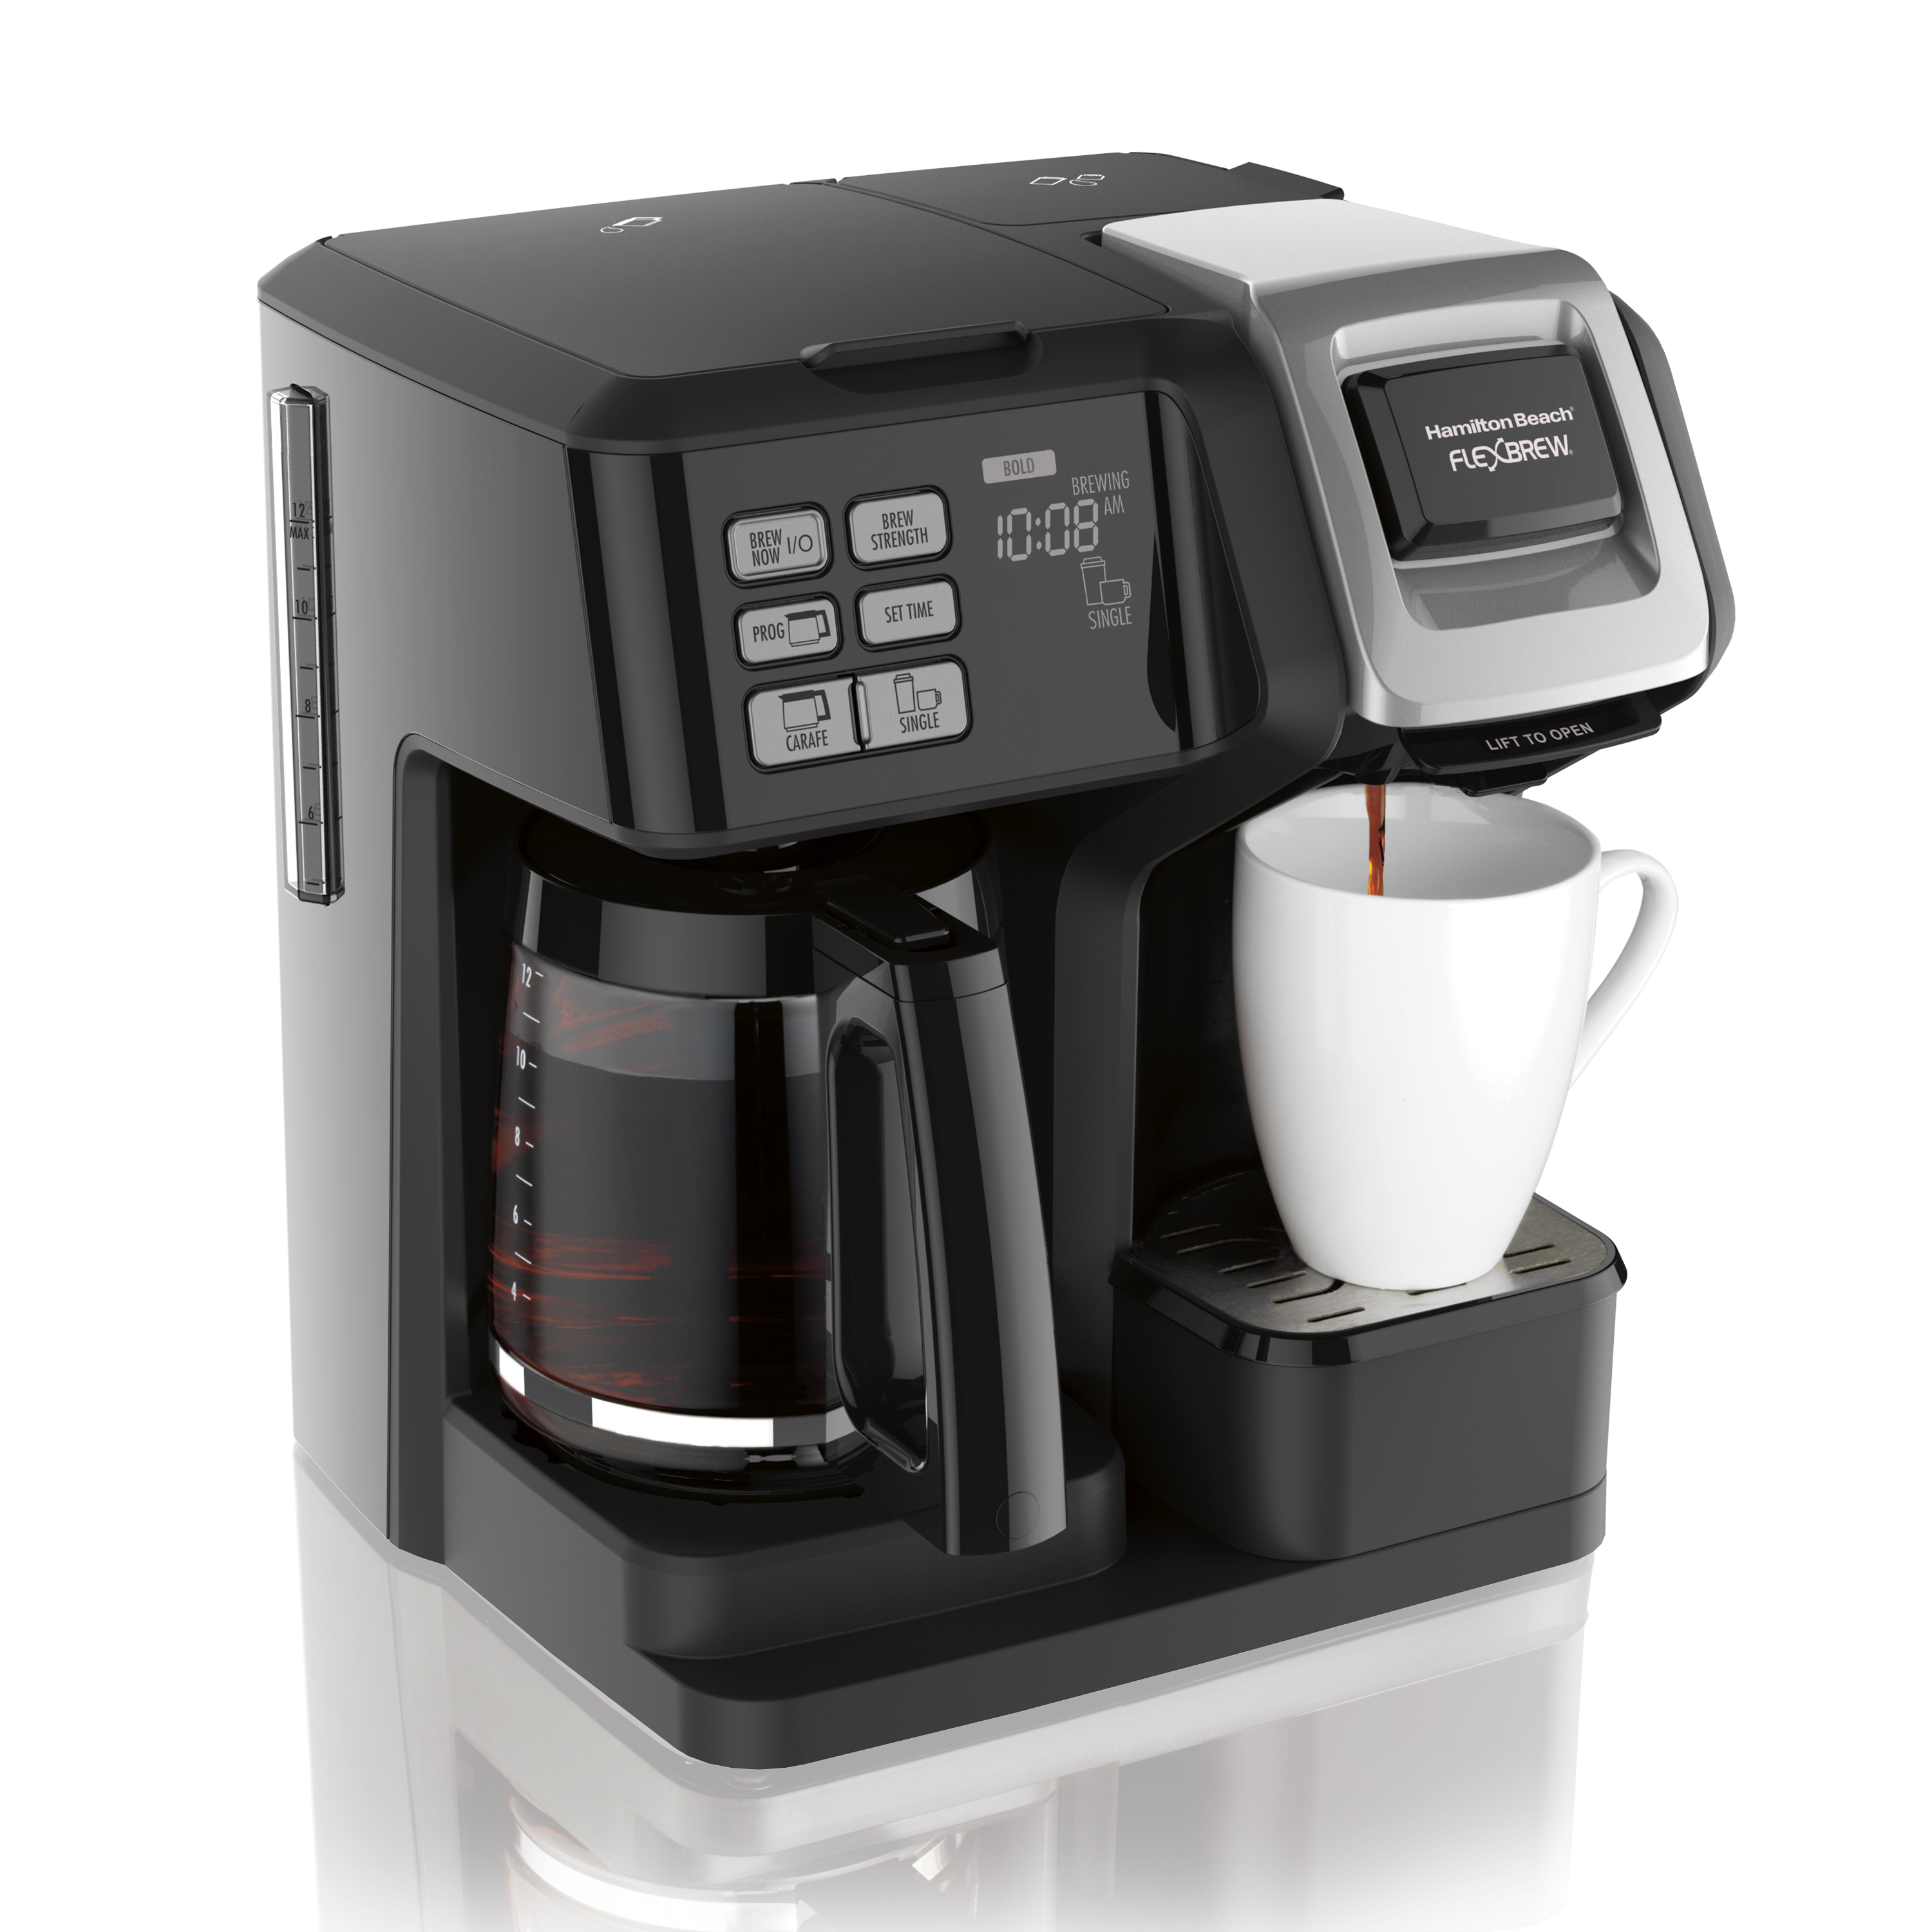 Hamilton Beach® Flex Brew® 2 Way Coffee Maker | Model# 49954 by Hamilton Beach